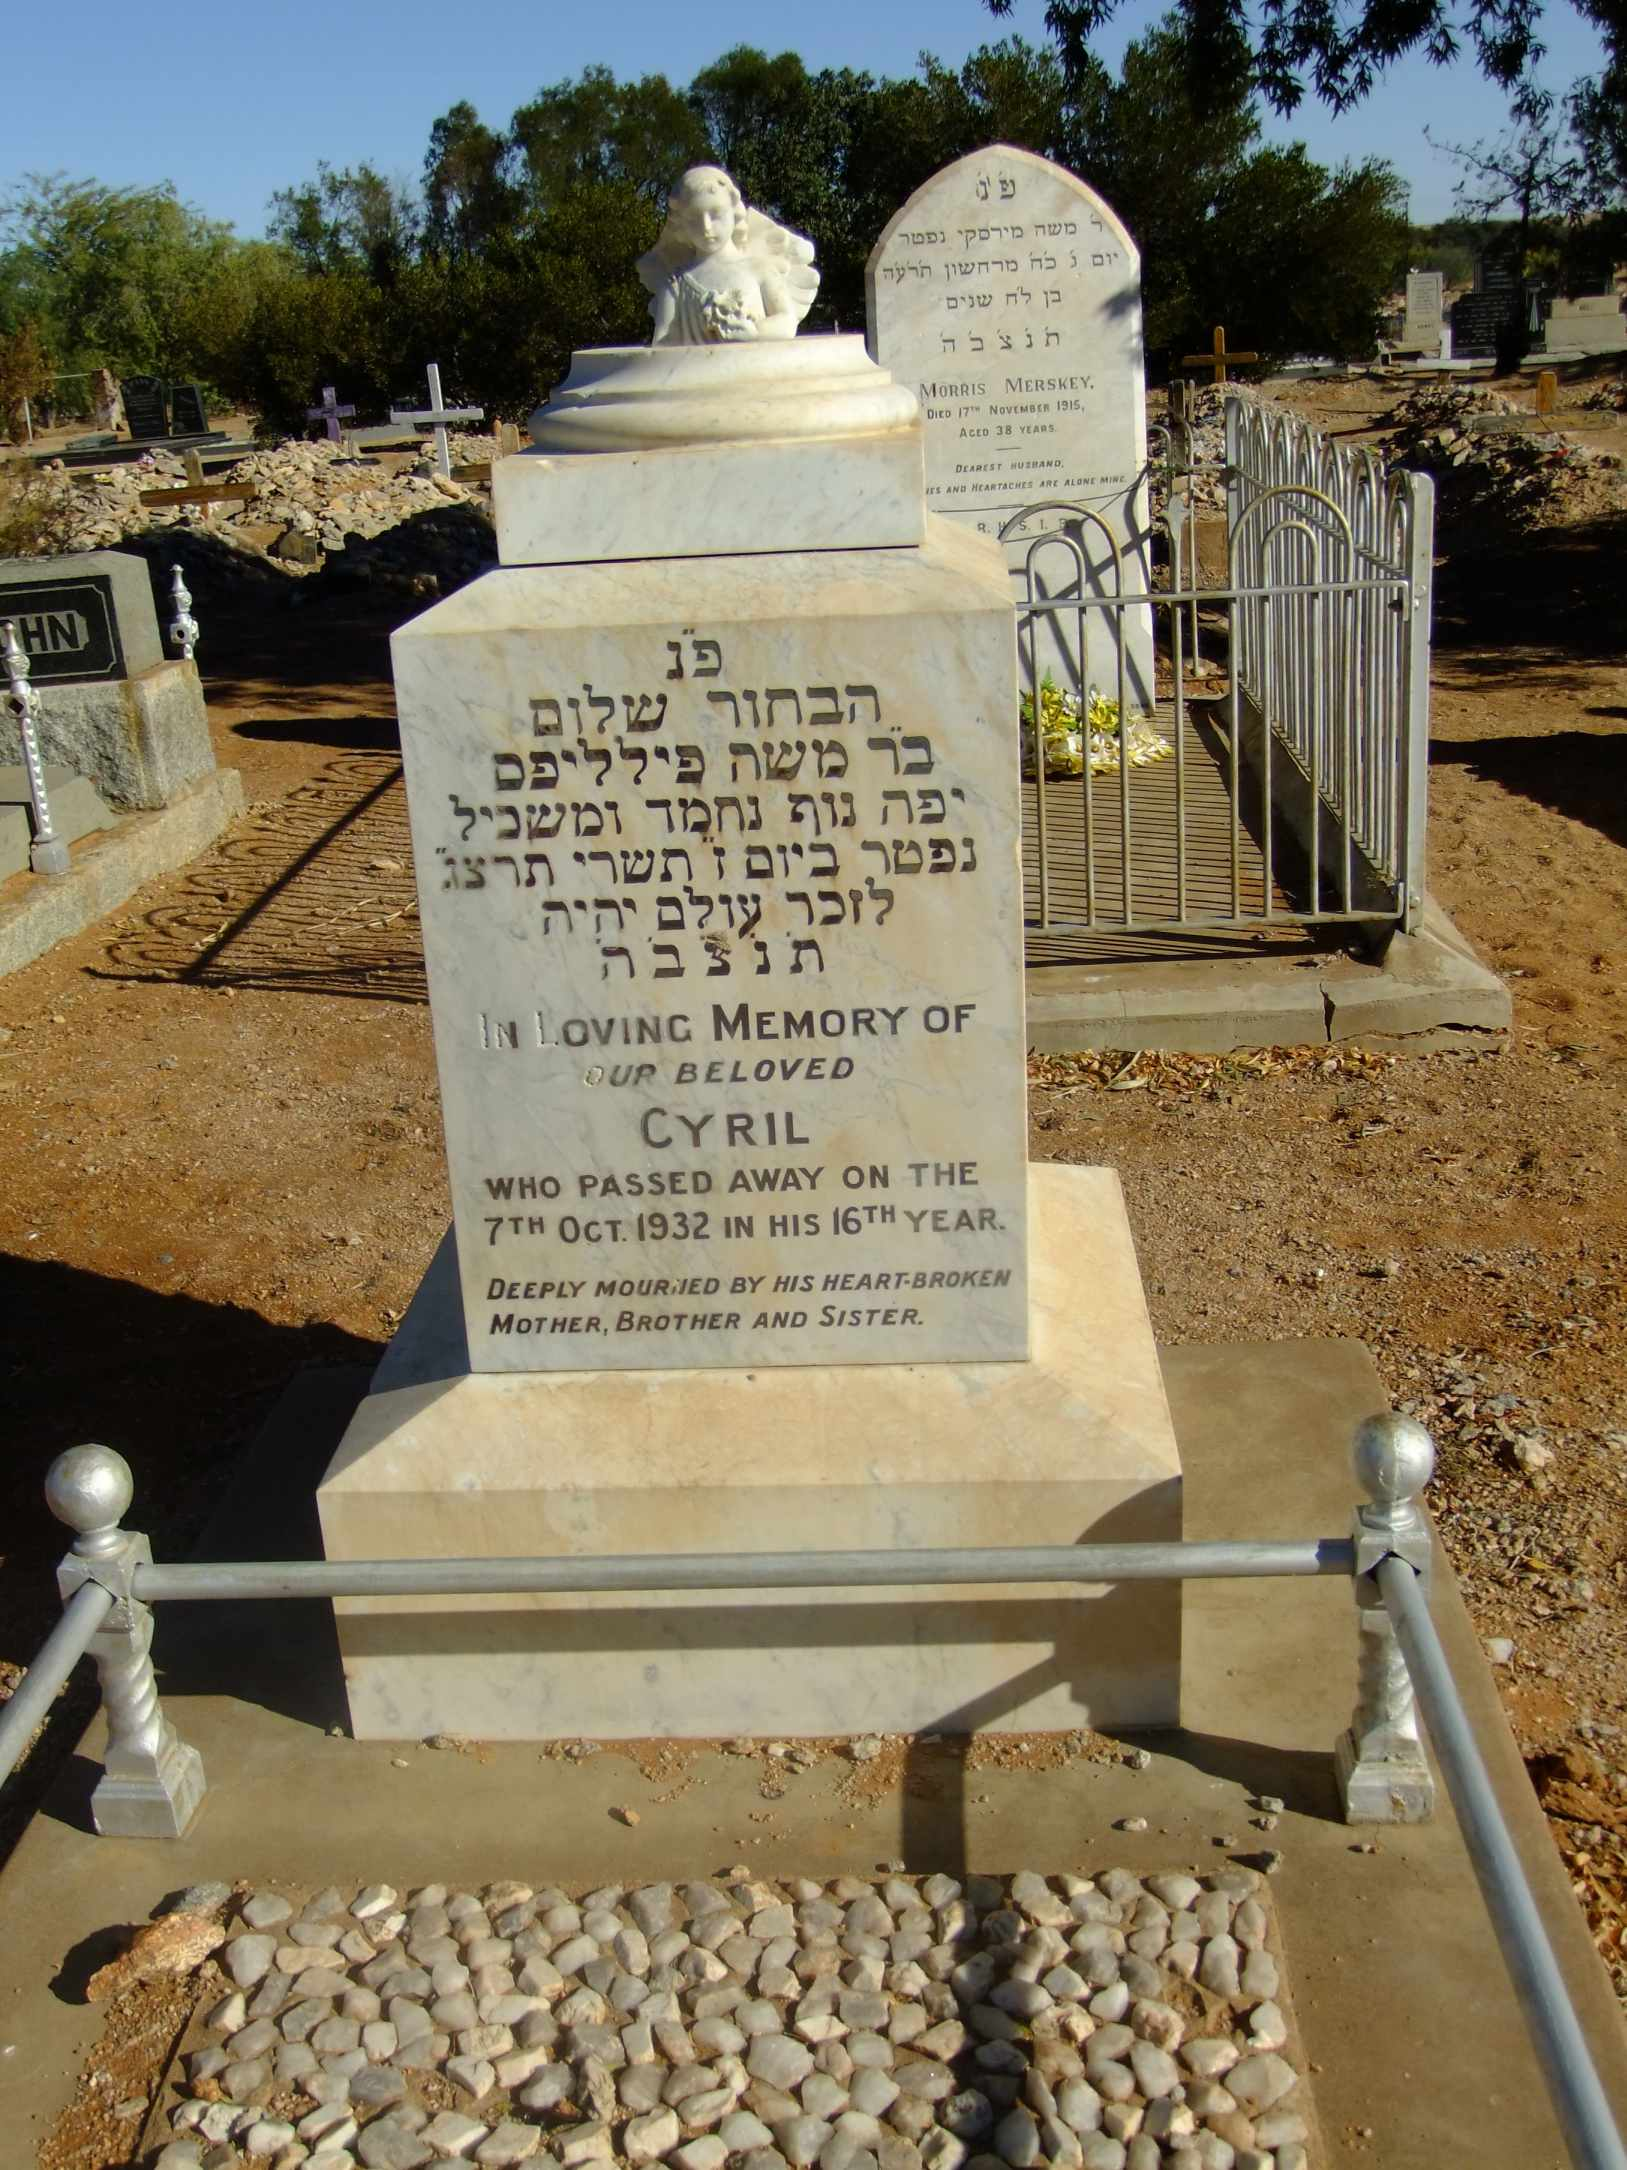 Jewish Grave, Cyril died 07 October 1932 in his 16th year